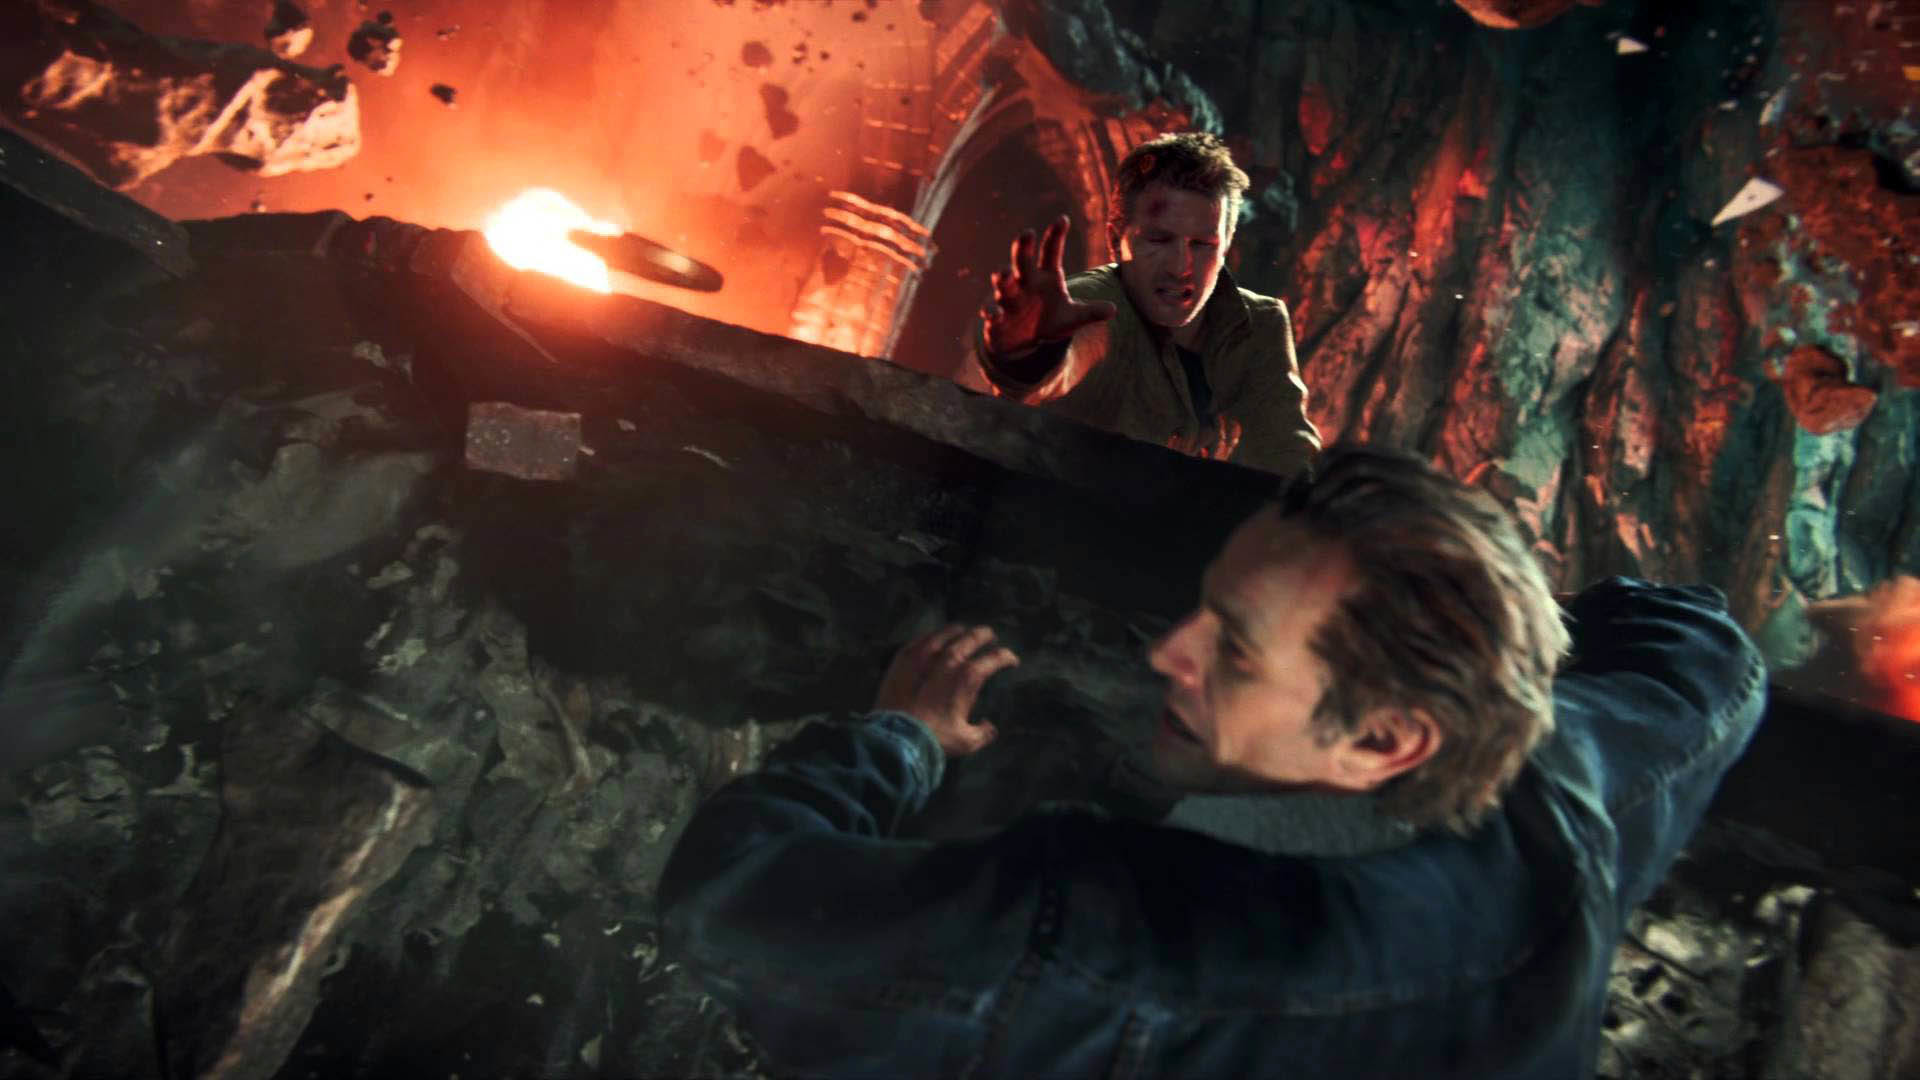 Uncharted 4: A Thief's End – Explosive Scene wallpaper